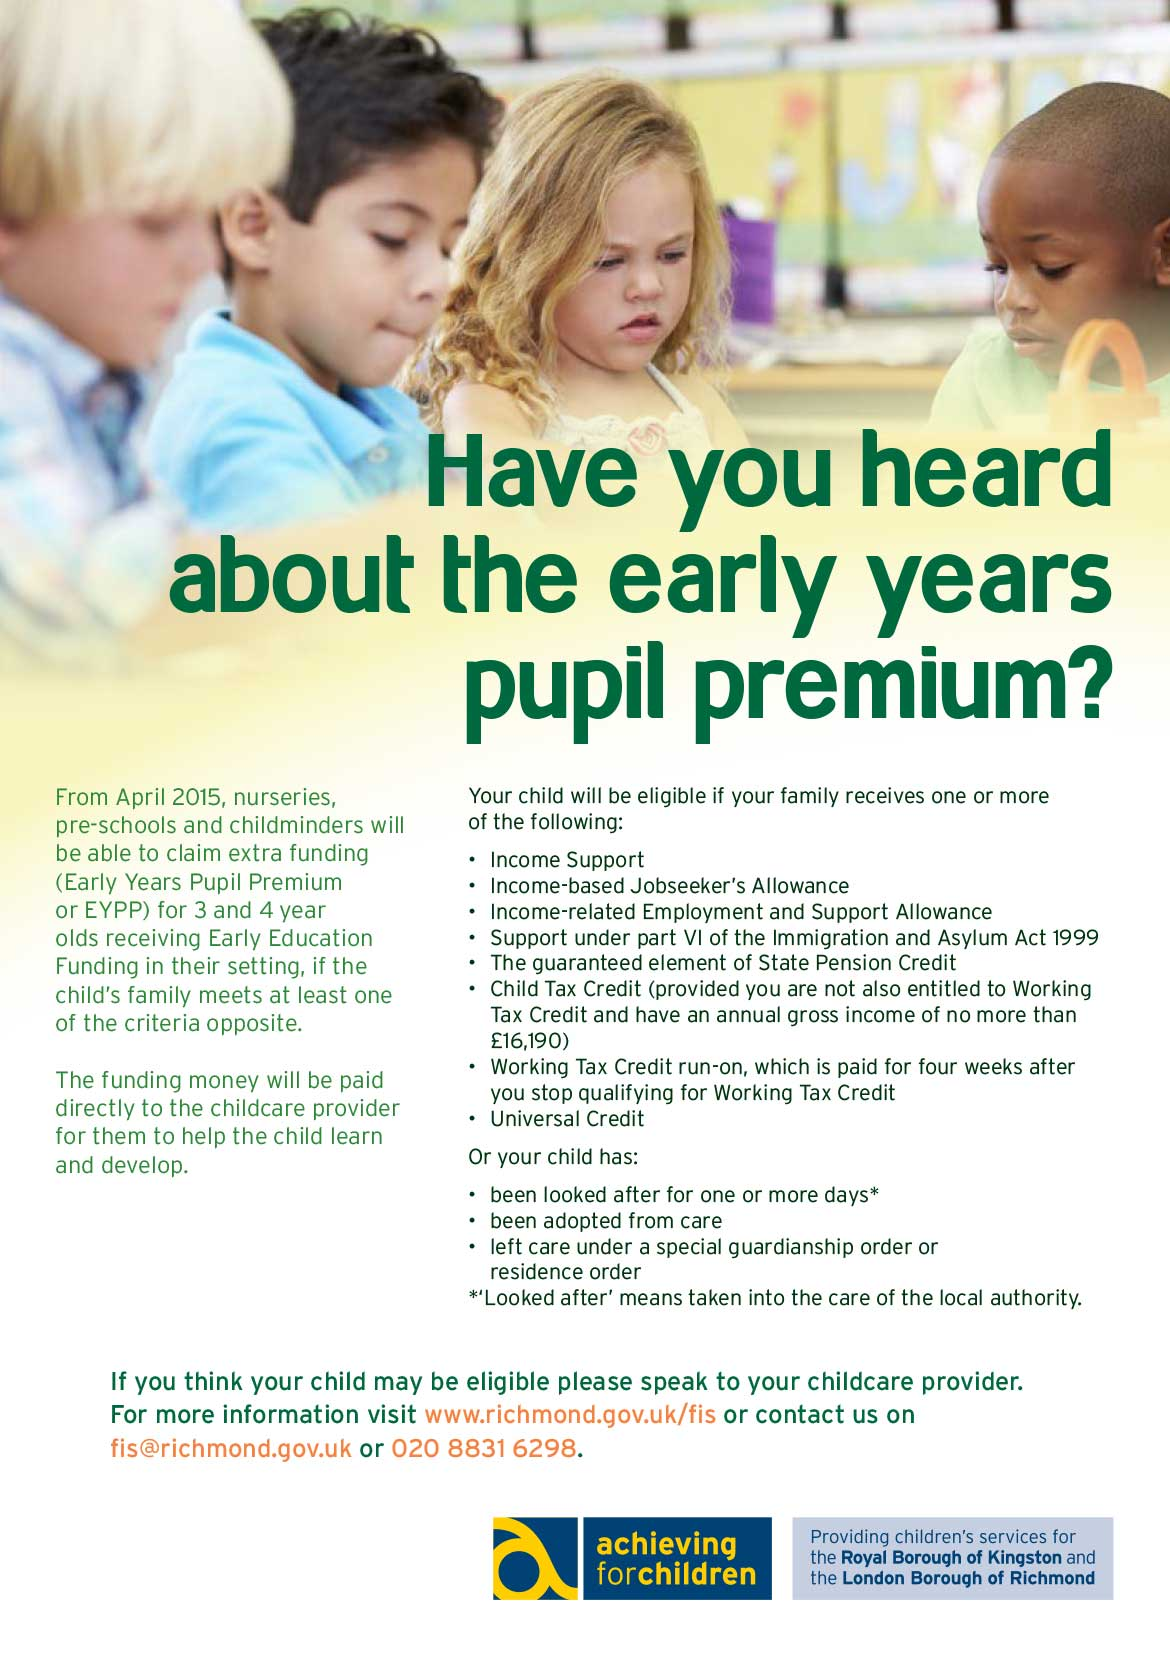 Early Years Pupil Premium poster